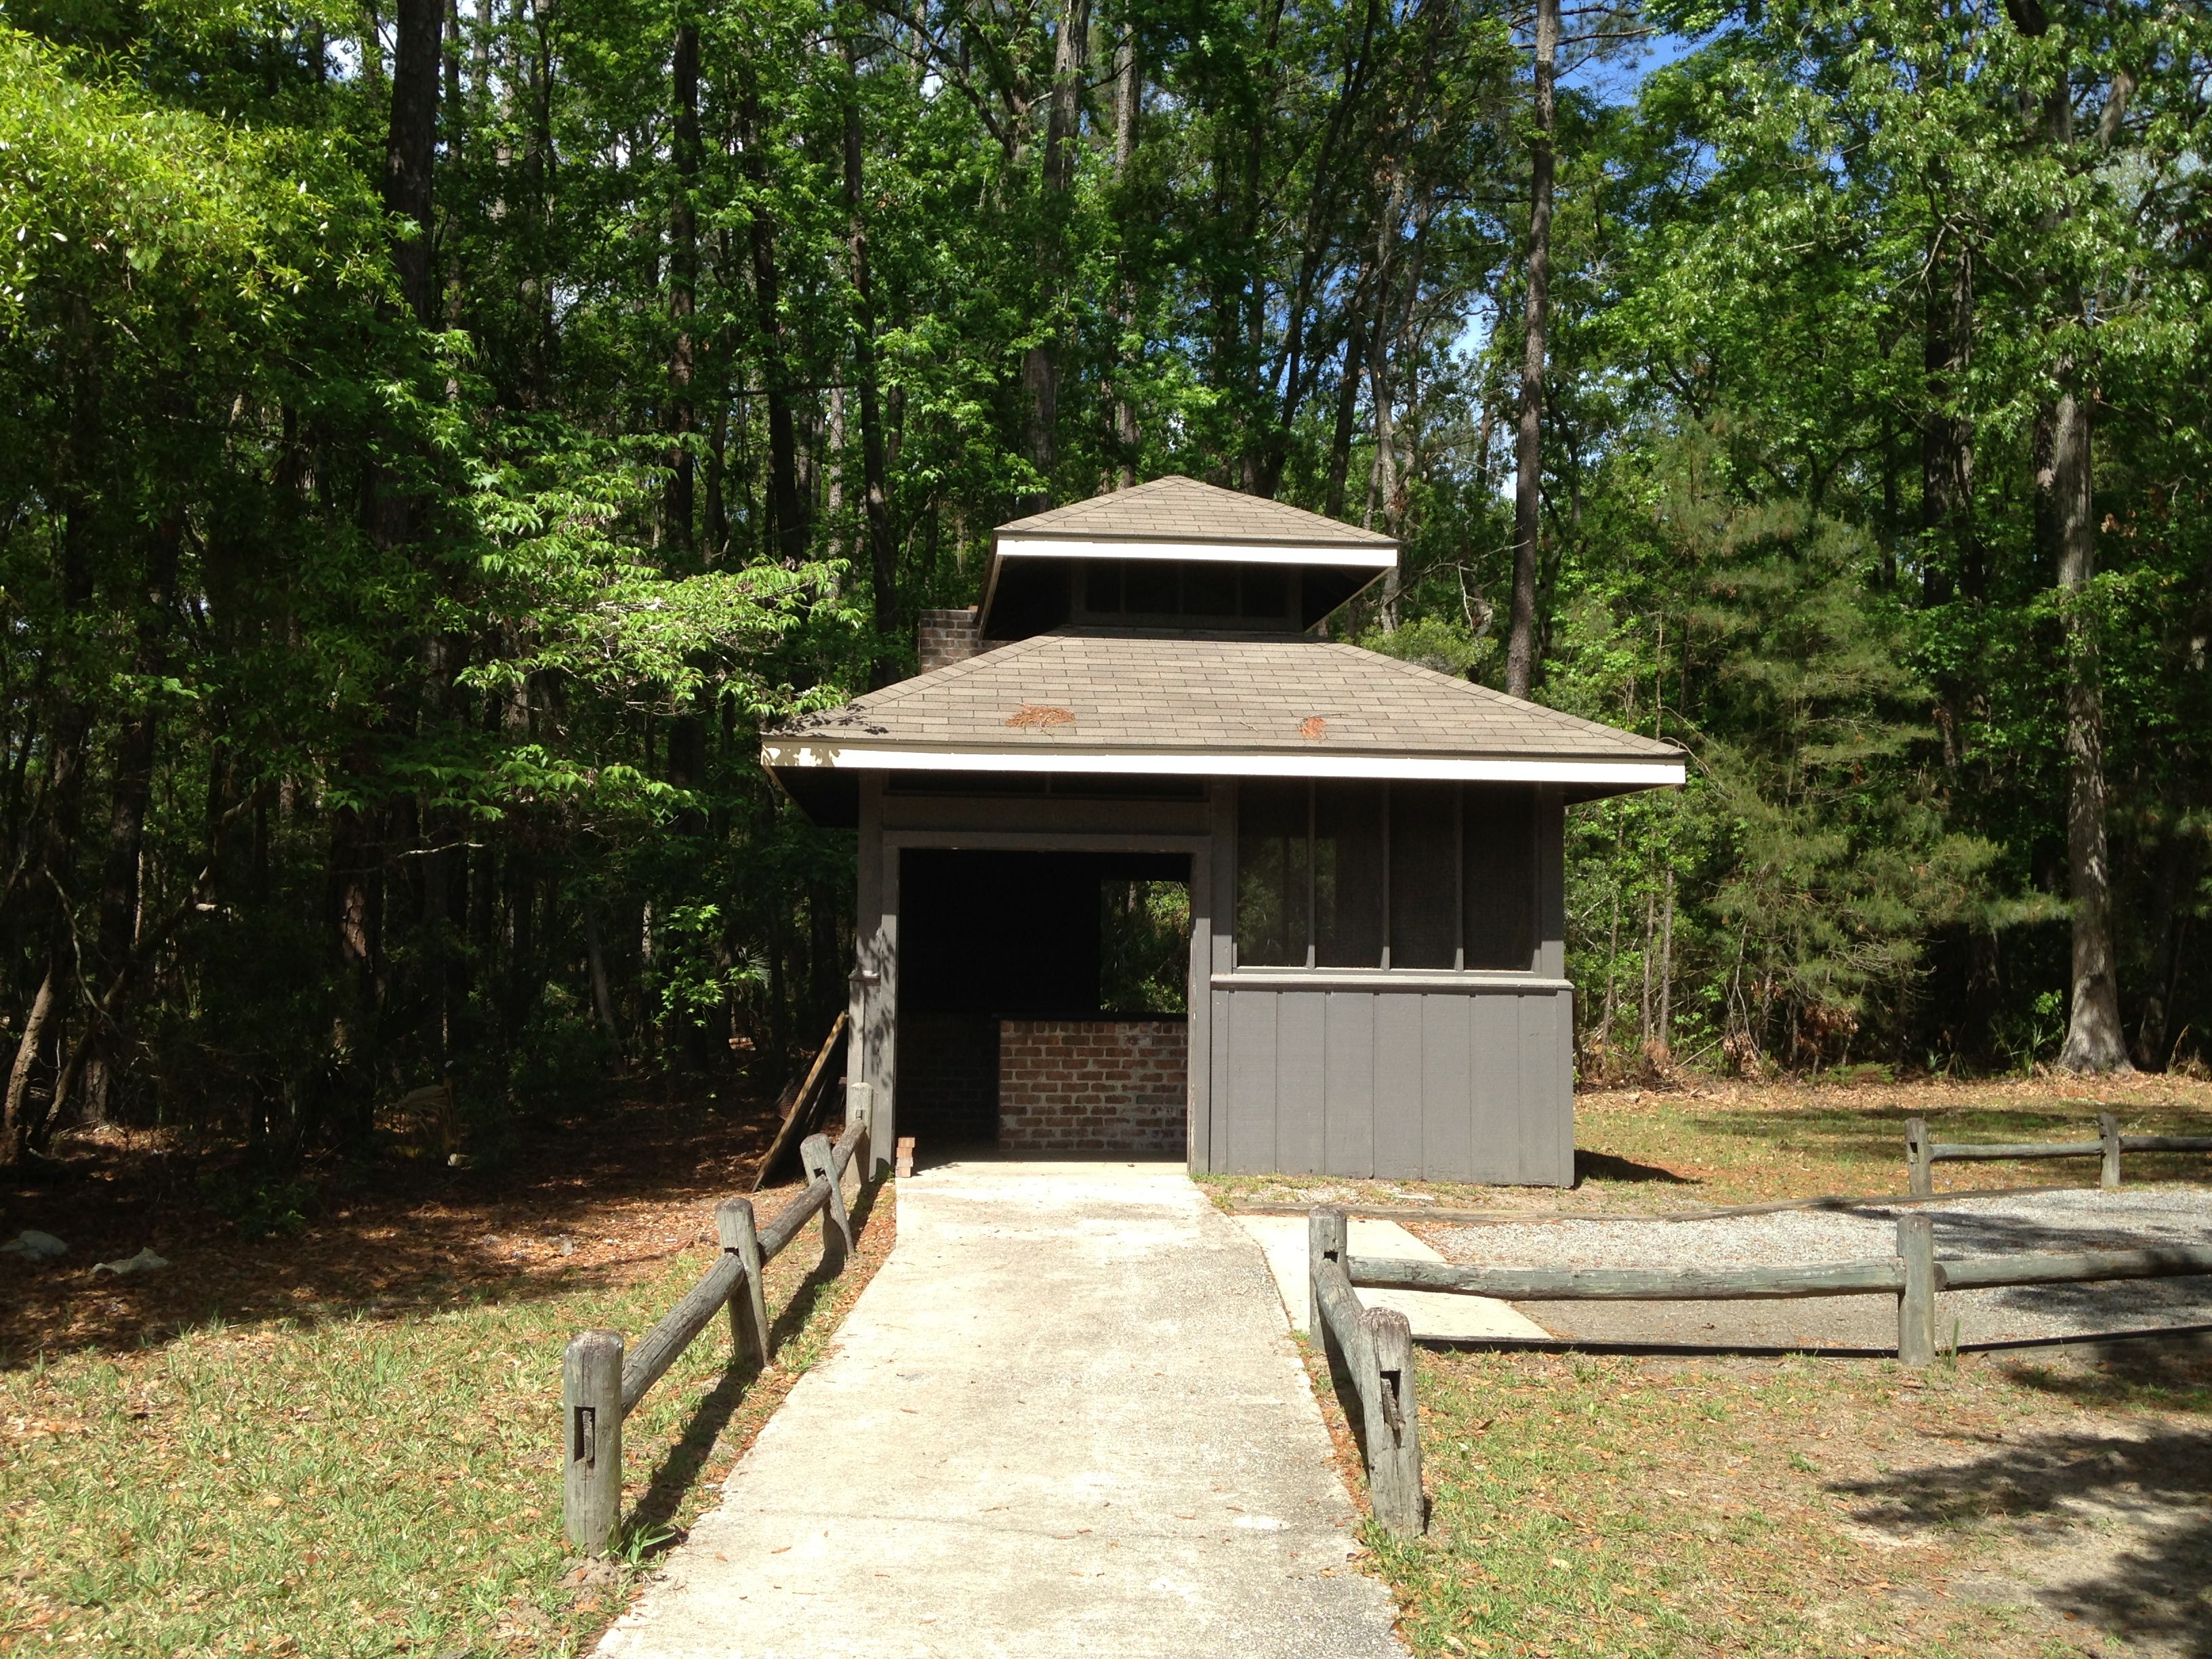 BBQ grill at the group shelter at Fort McAllister is perfect for oyster or pig roasts